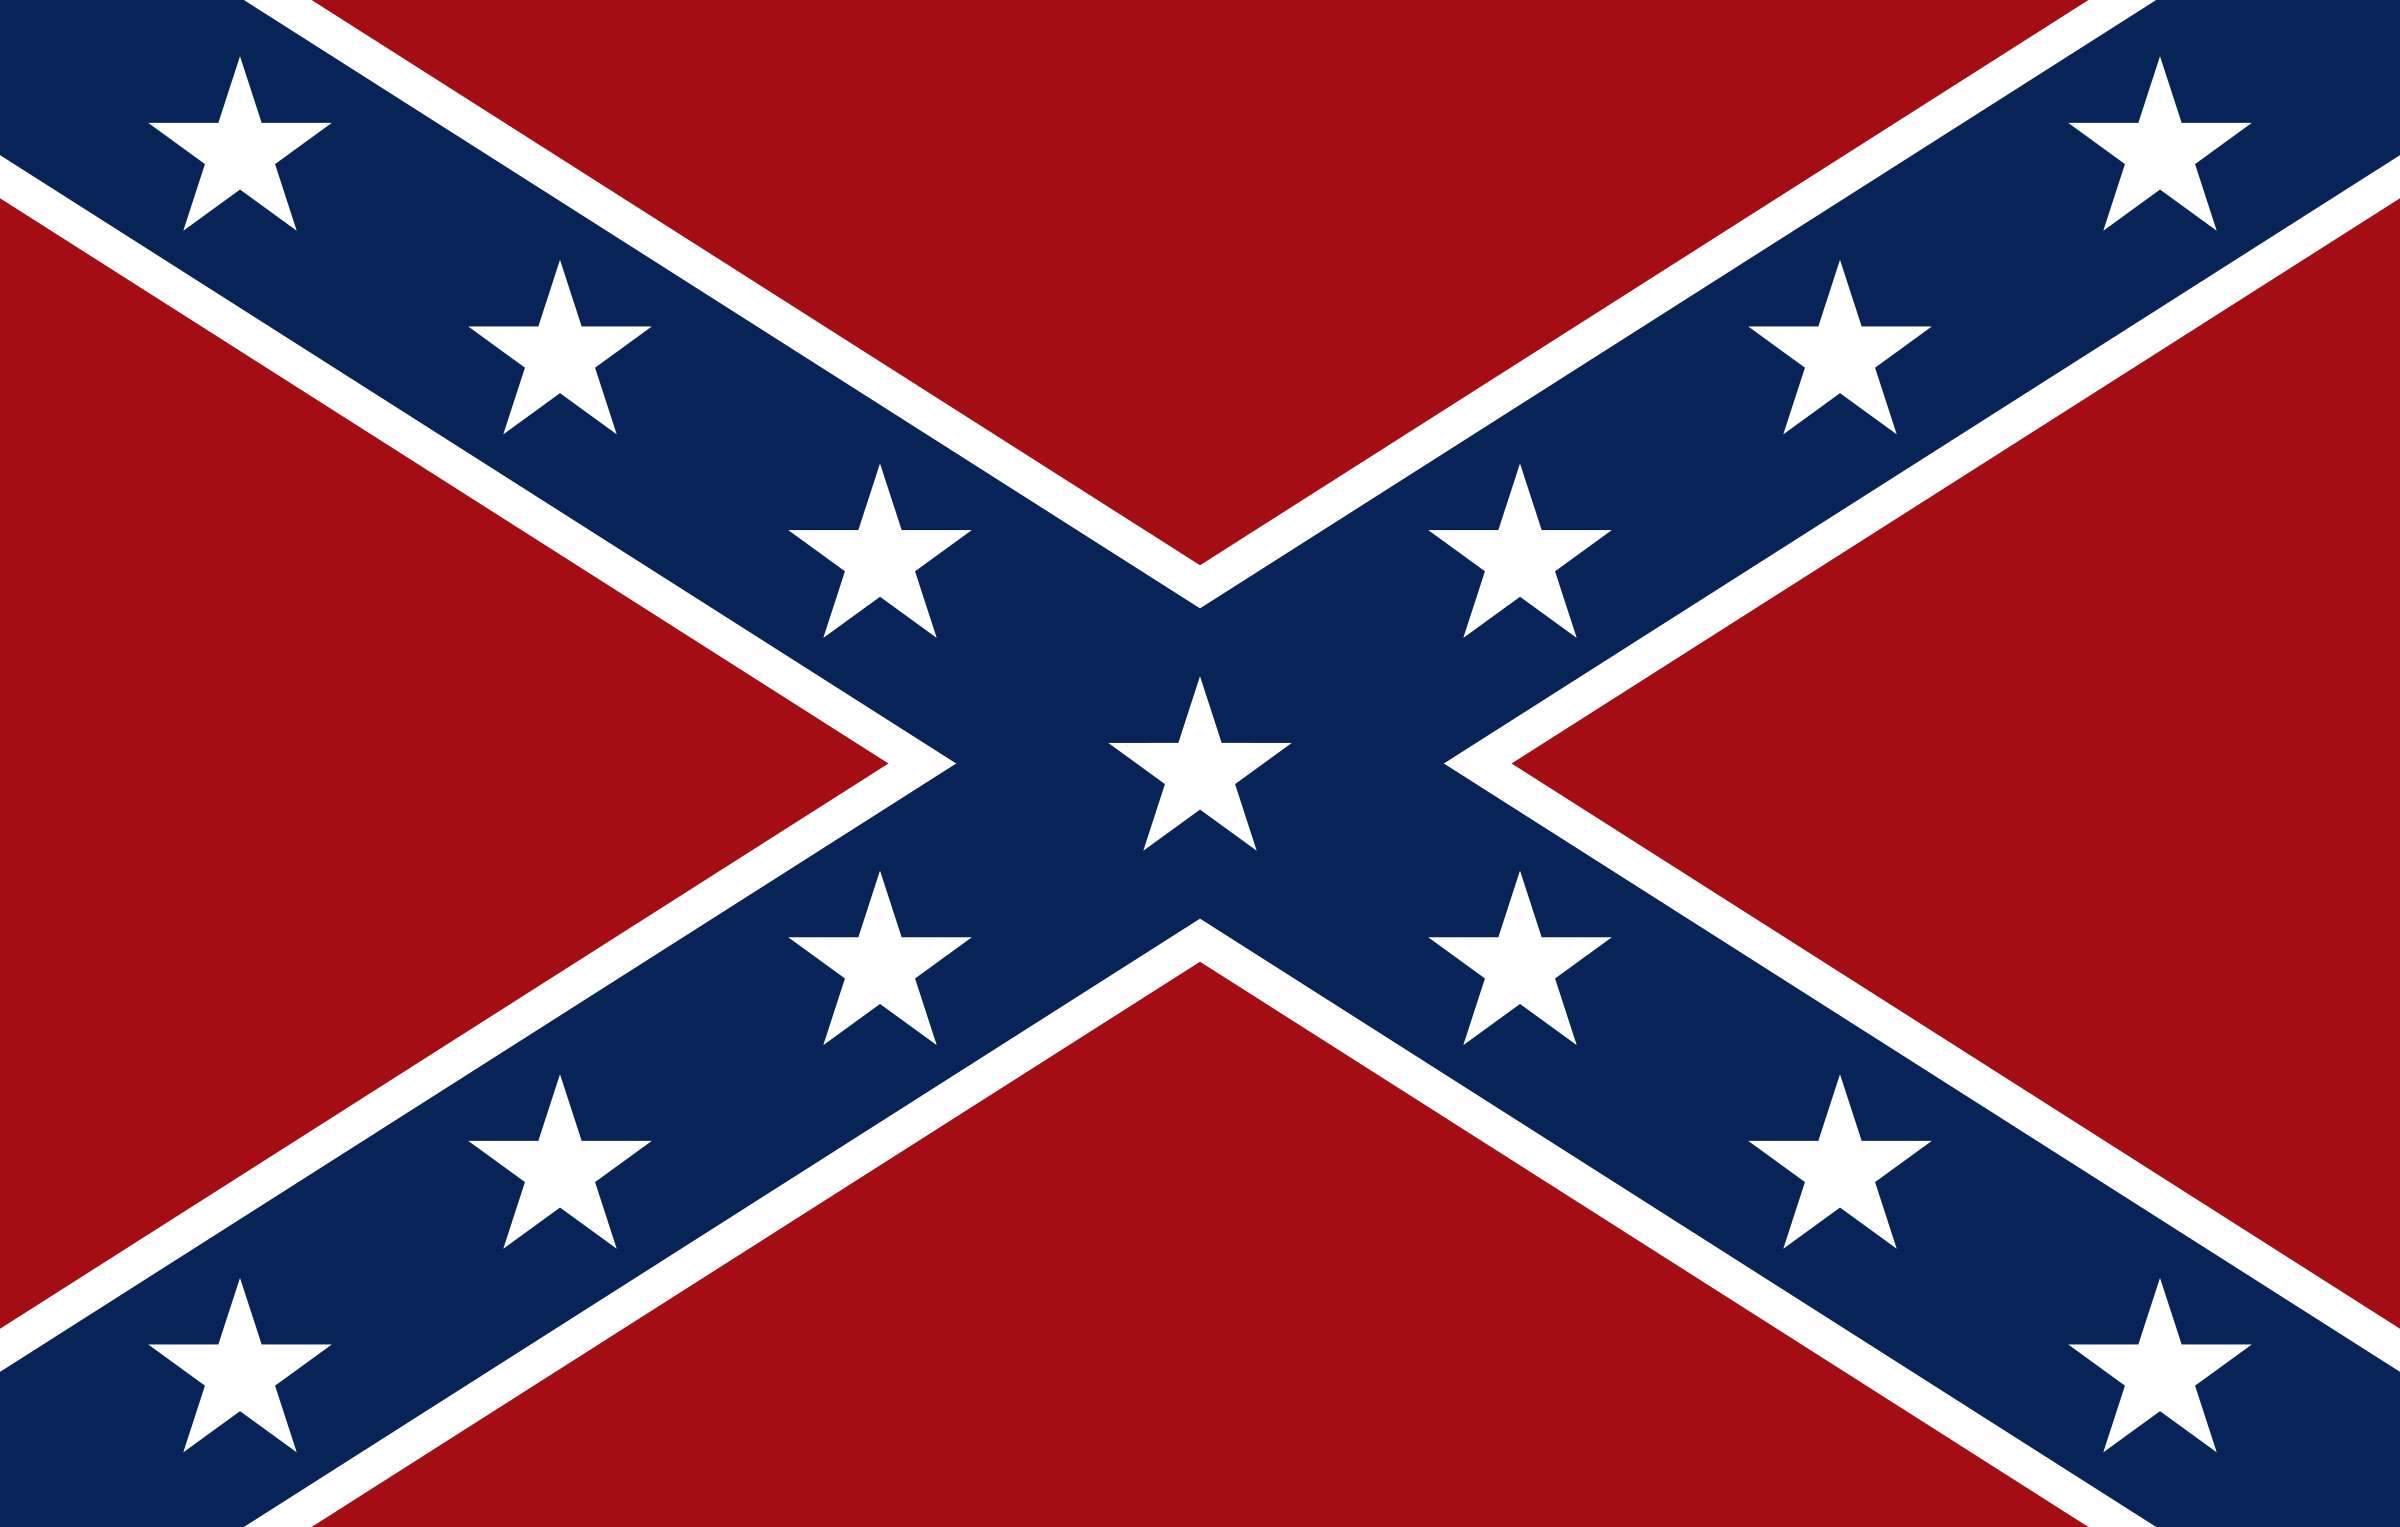 confederate flag clipart clipart best 1860 Civil War Union Flag 1860 Civil War Union Flag